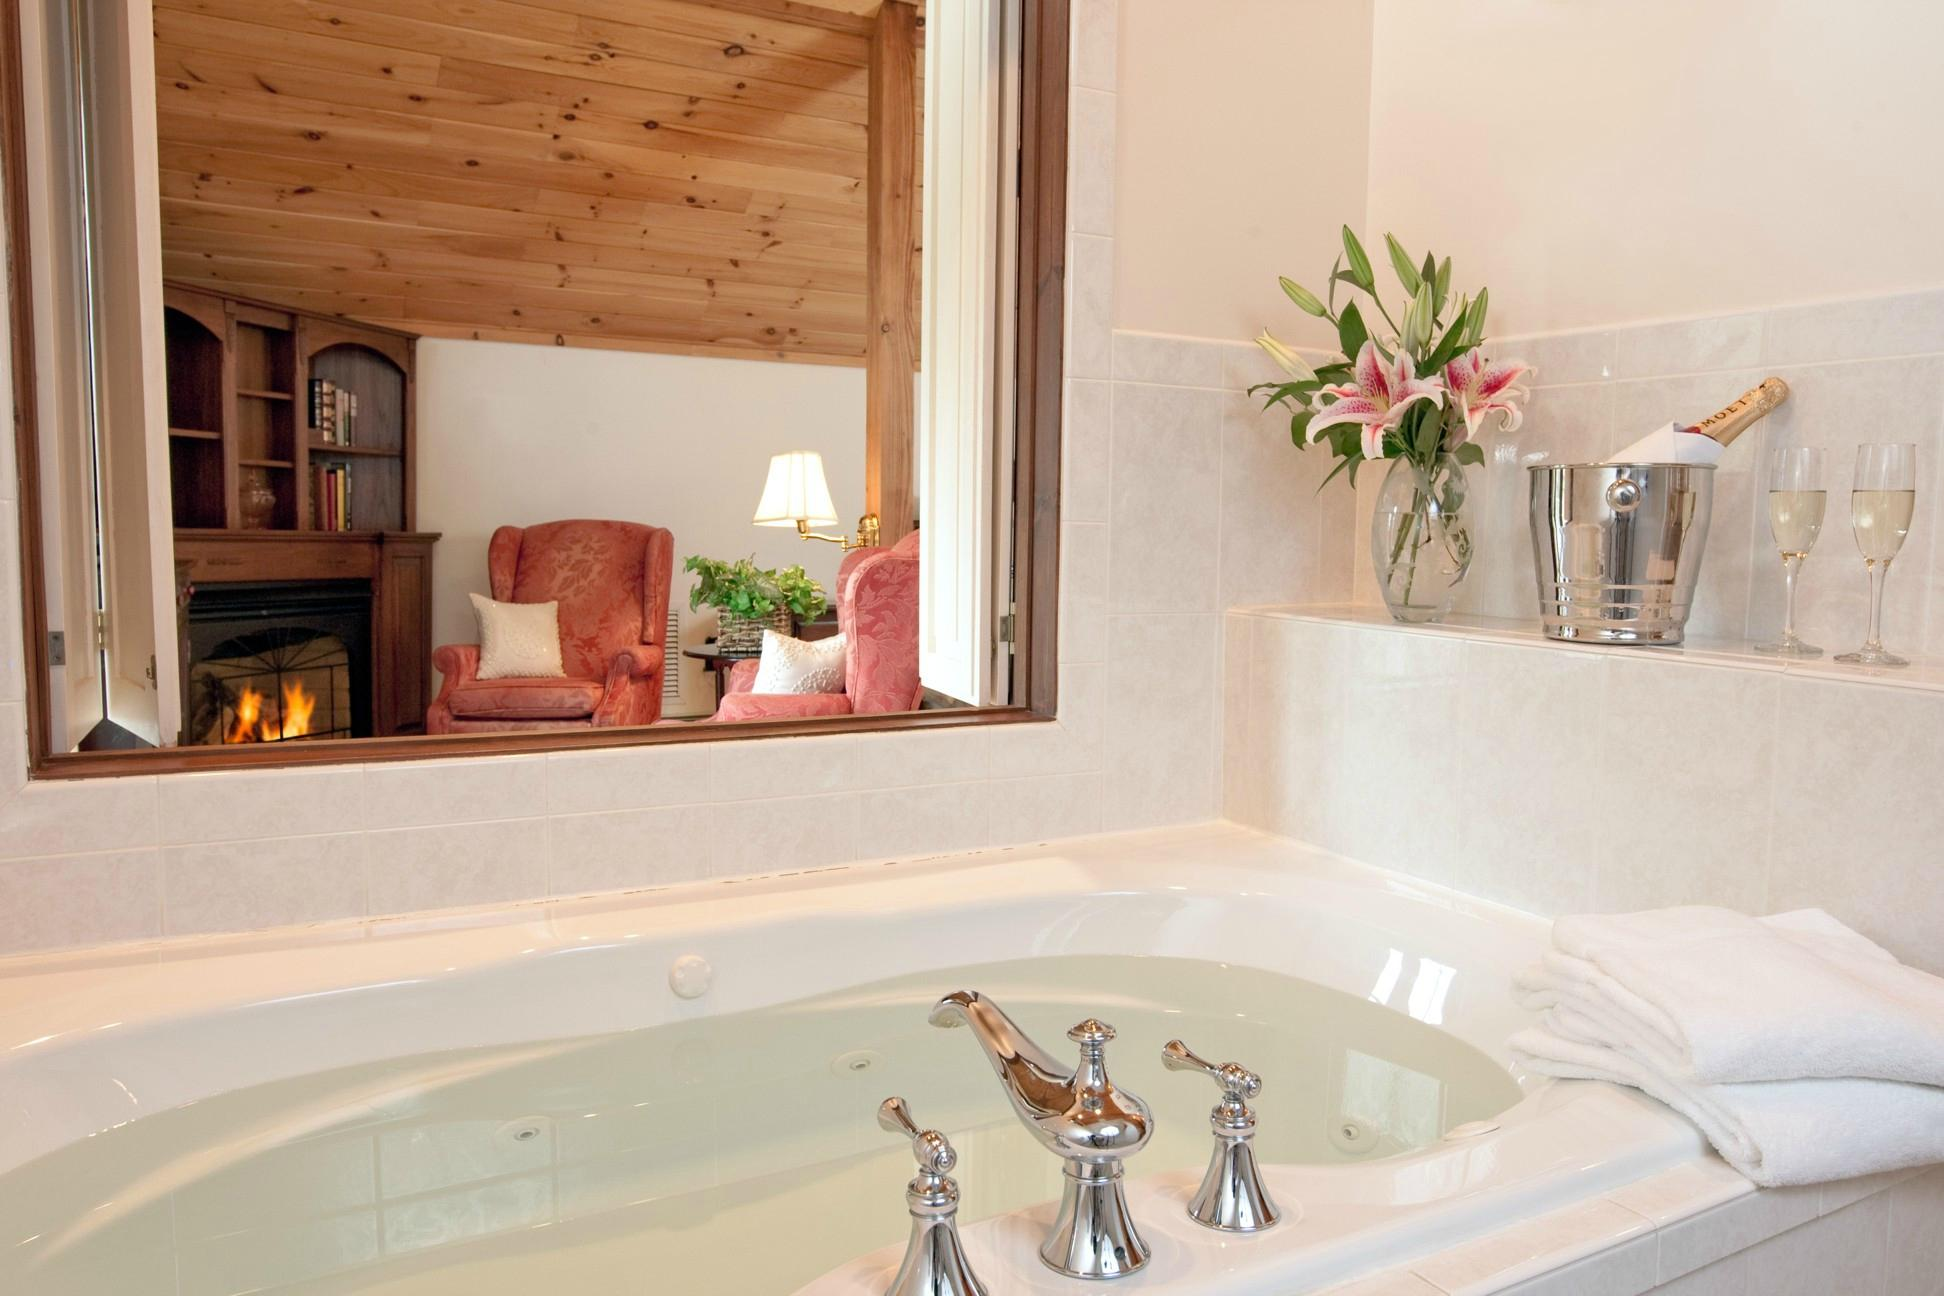 stonecroft-country-inn-jacuzzi-hotel